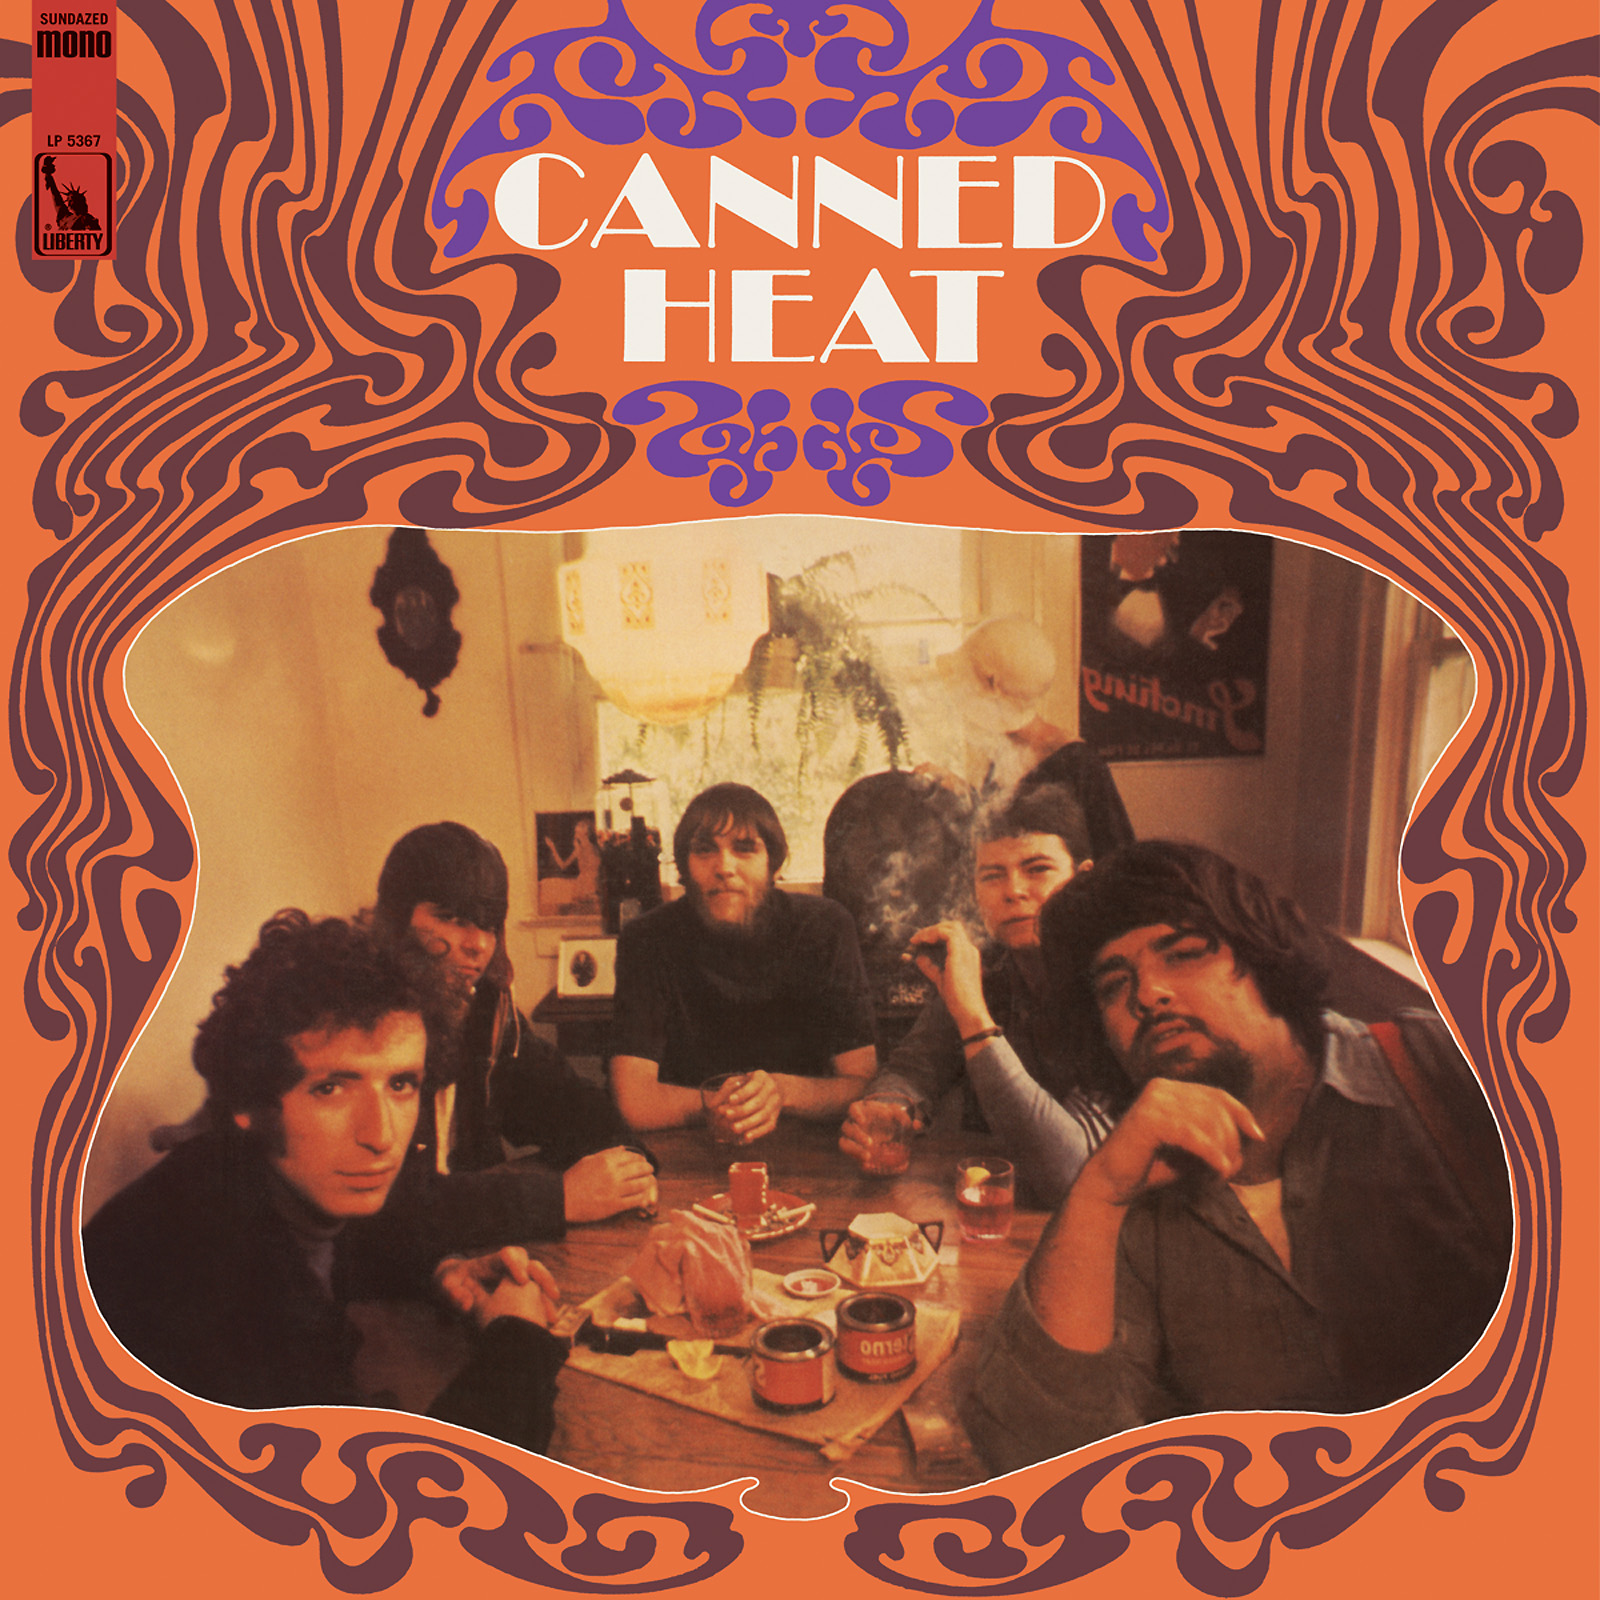 Canned Heat - Canned Heat MONO Edition LP